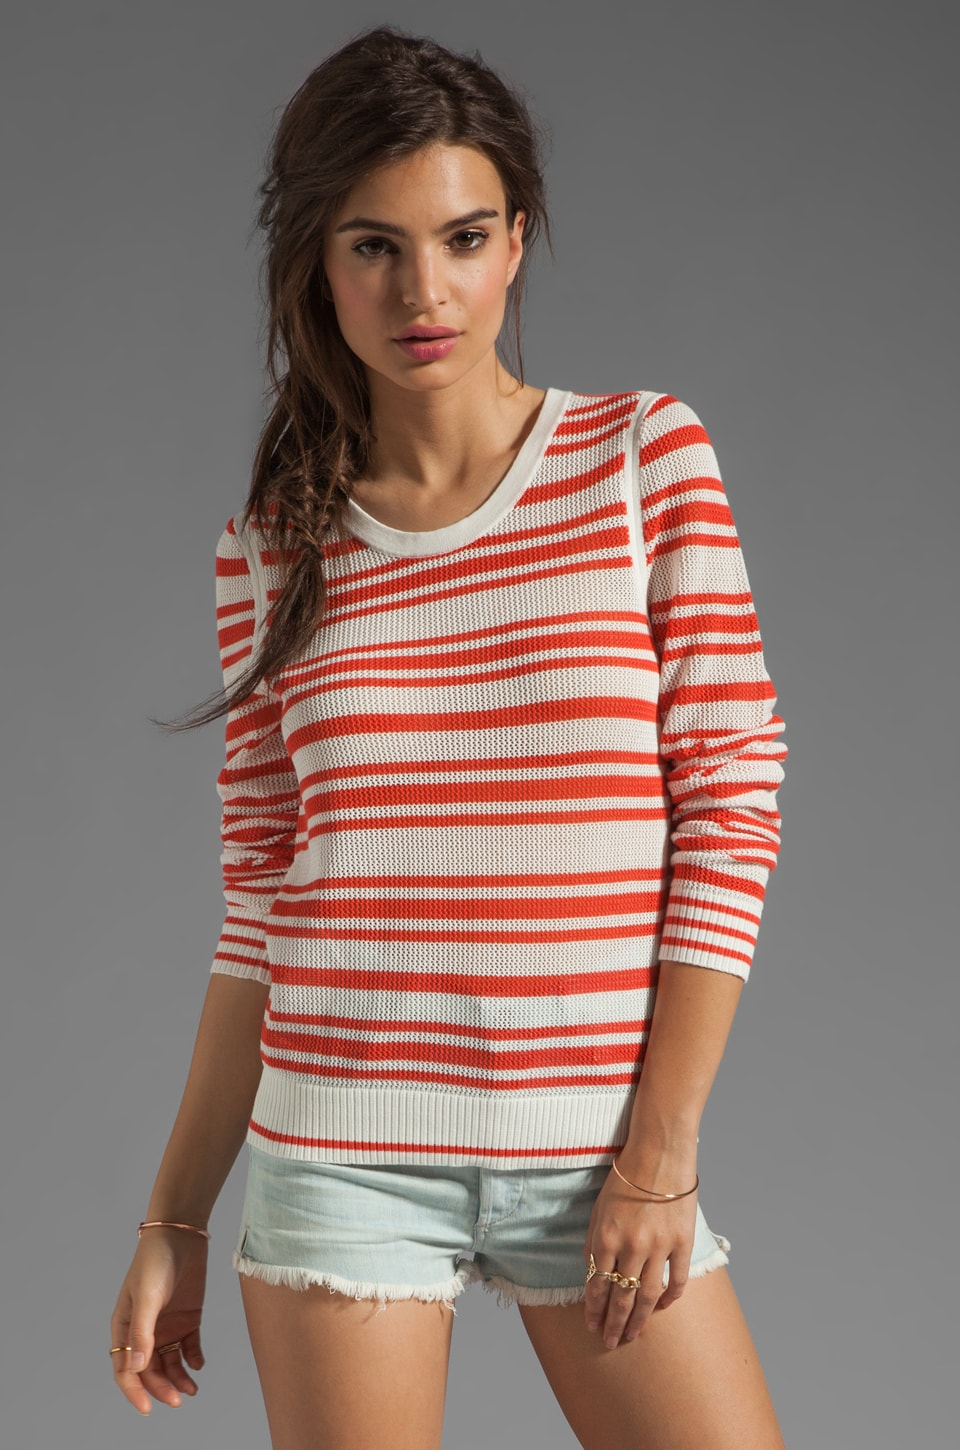 rag & bone/JEAN rag & bone Kathie Sweater in White/Coral